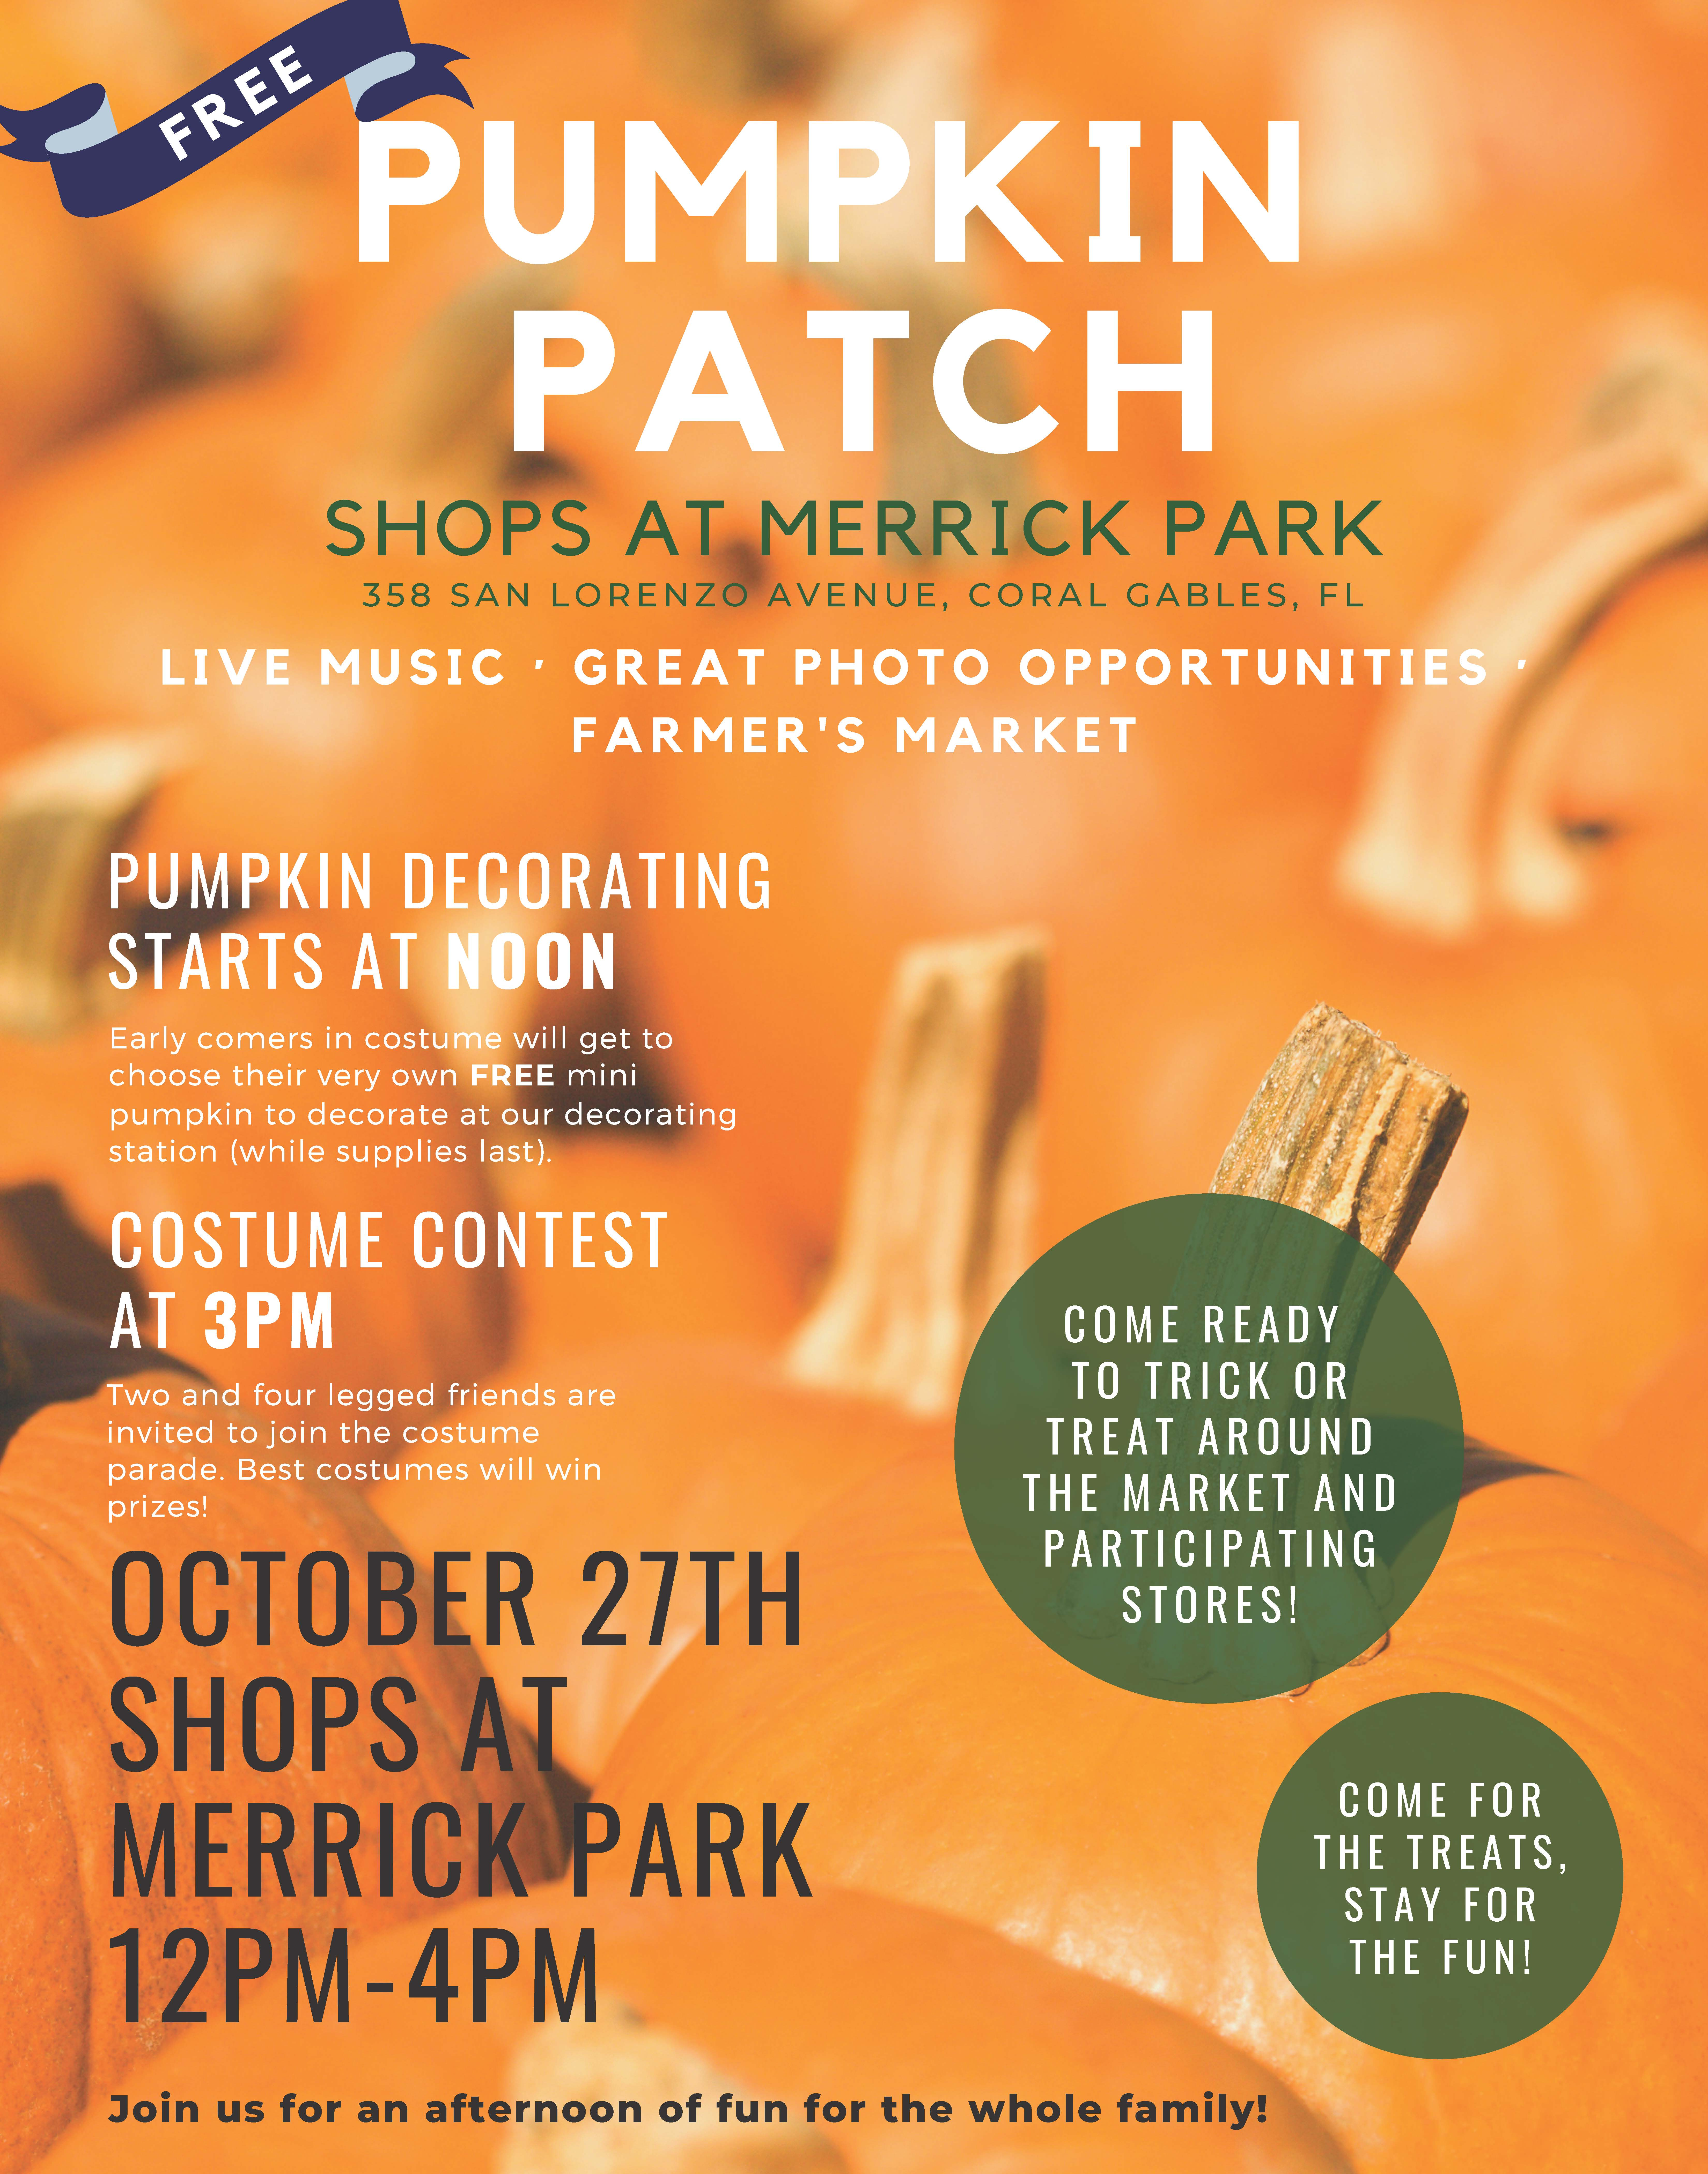 Farmer's Market Pumpkin Patch